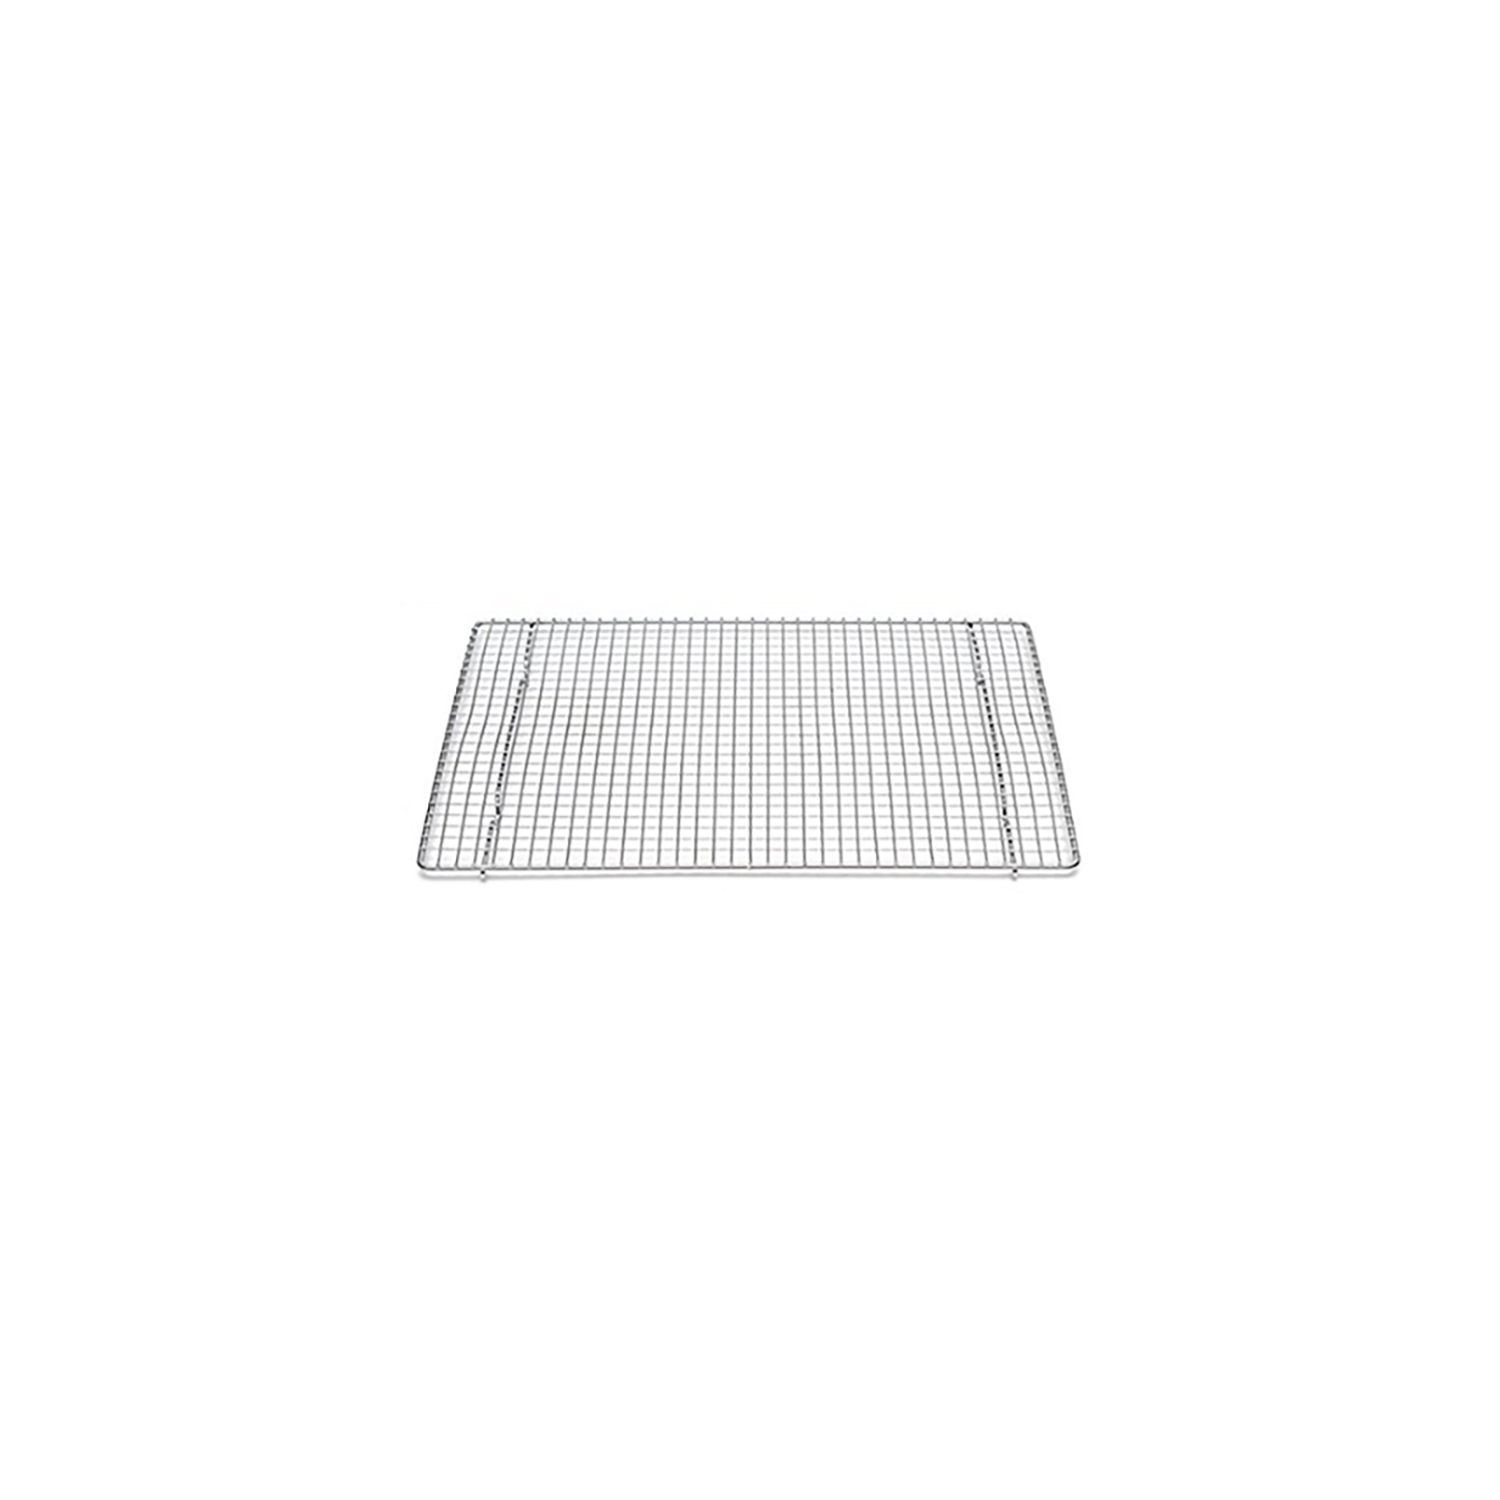 libertyware-professional-cross-wire-cooling-rack